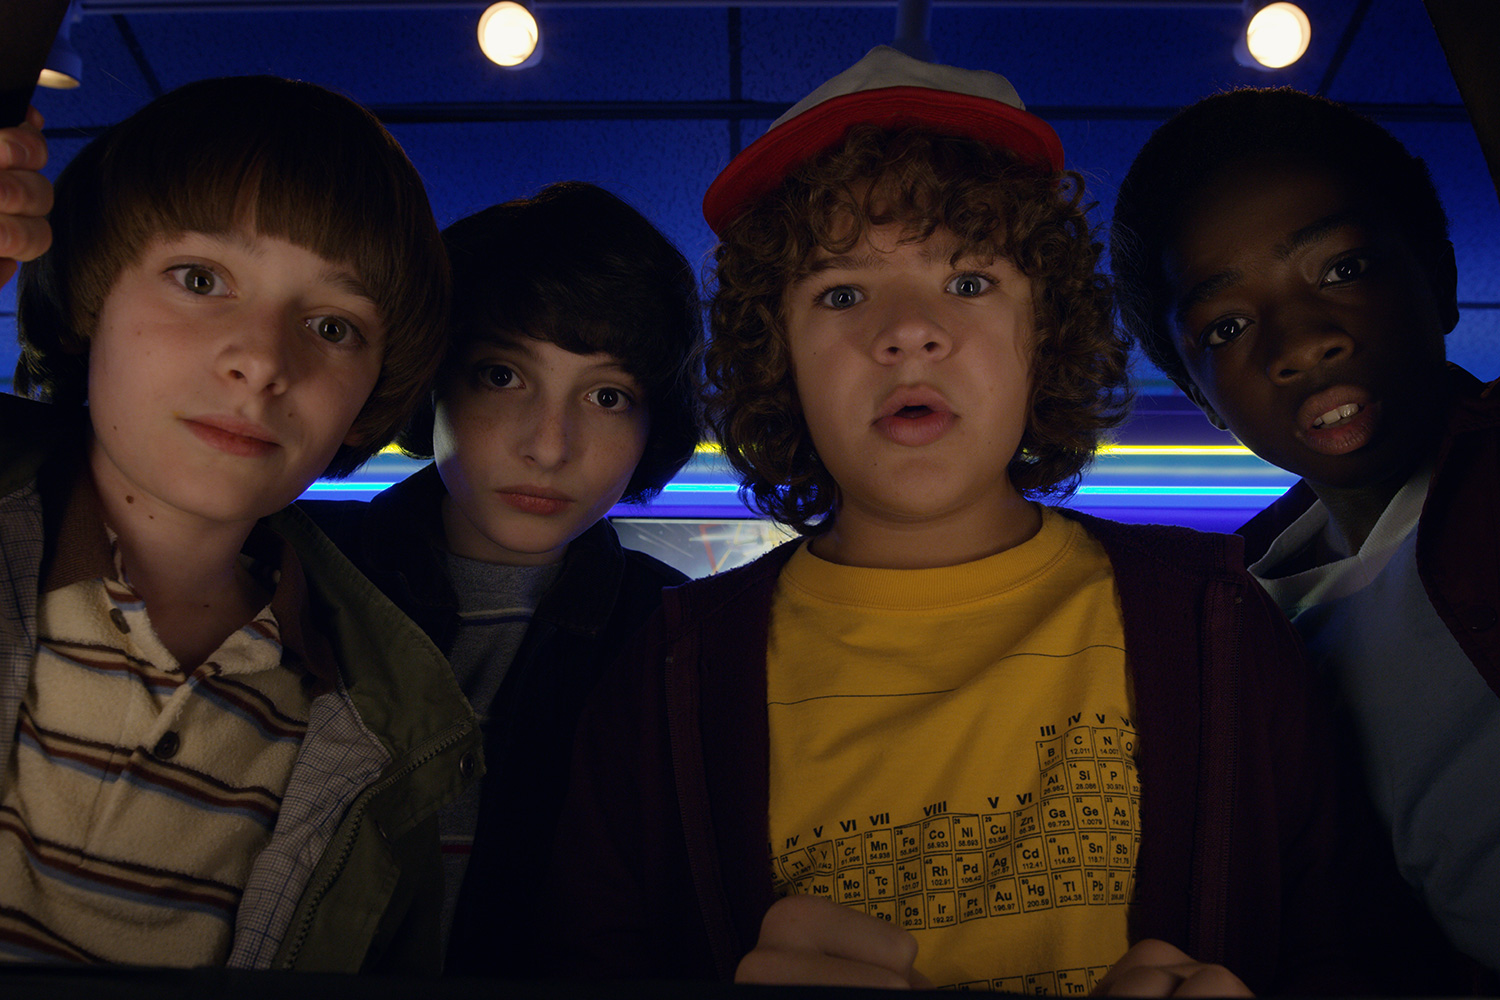 Turn your brain upside down with these 'Stranger Things' theories for season 2